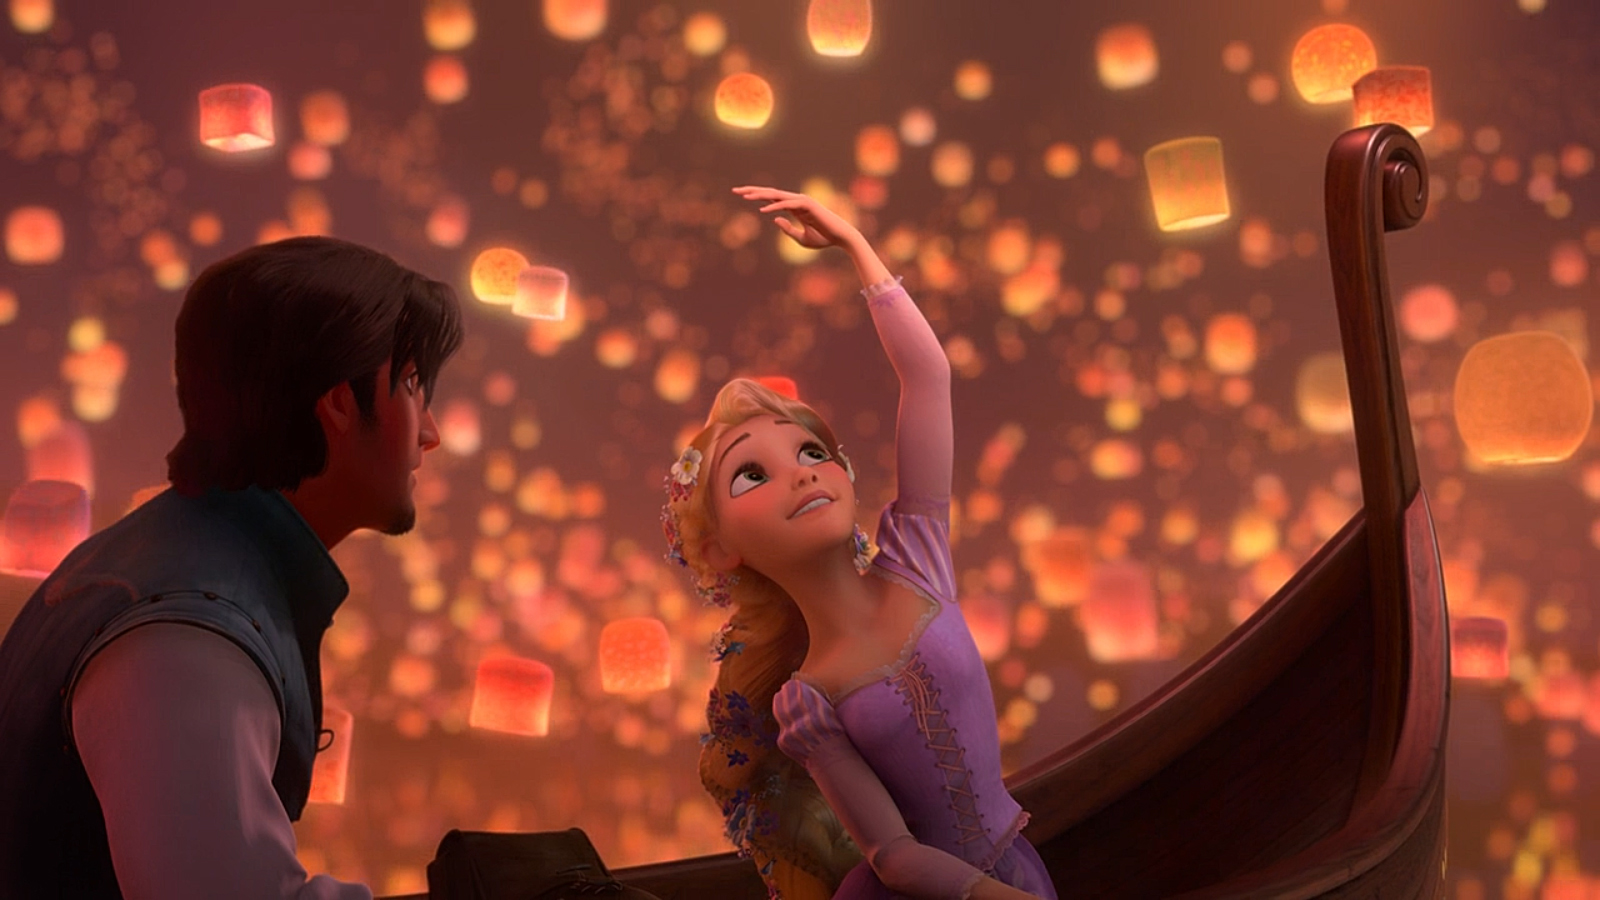 Tangled Wallpaper 1600x900 Tangled 1600x900